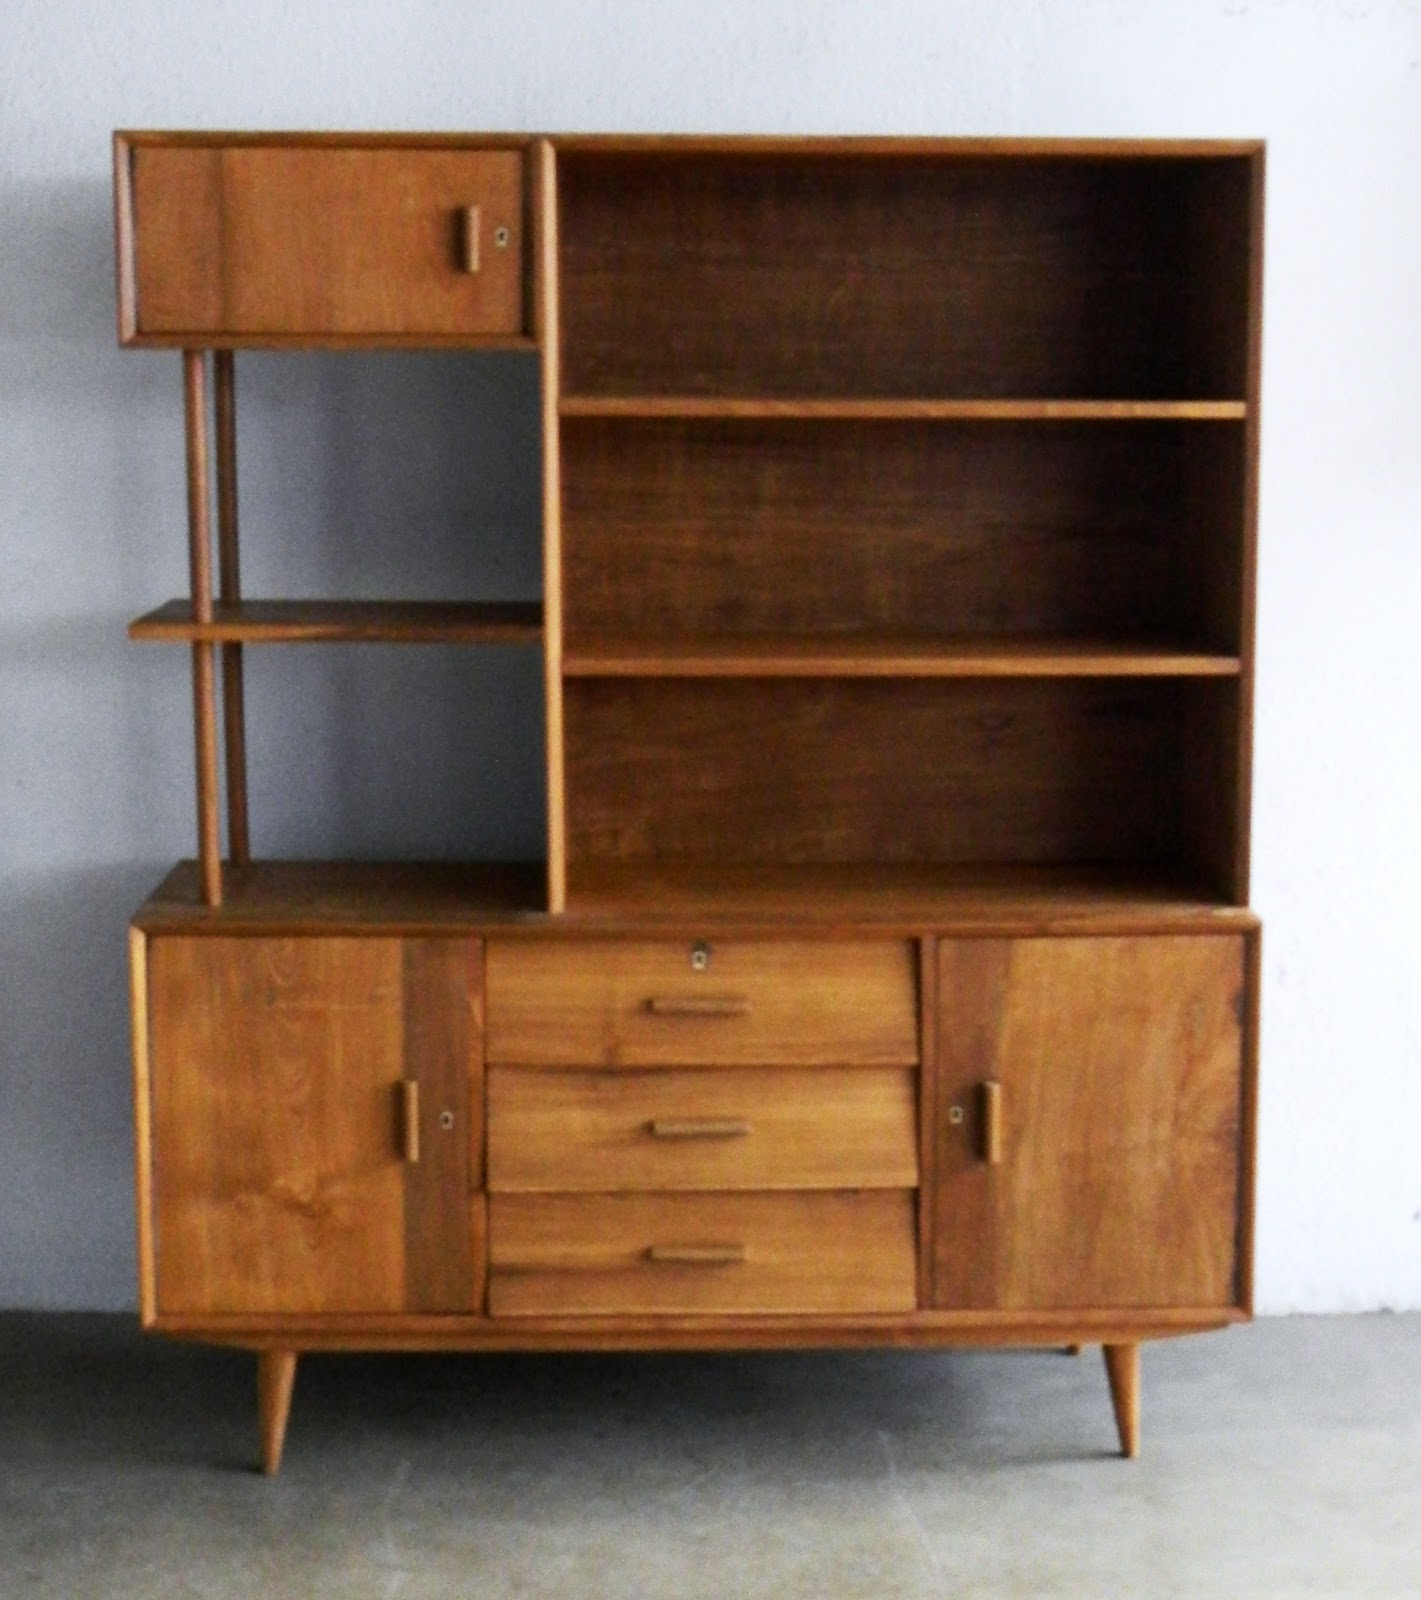 MID CENTURY MODERN FURNITURE: SIMPLICITY IS THE NAME OF ...